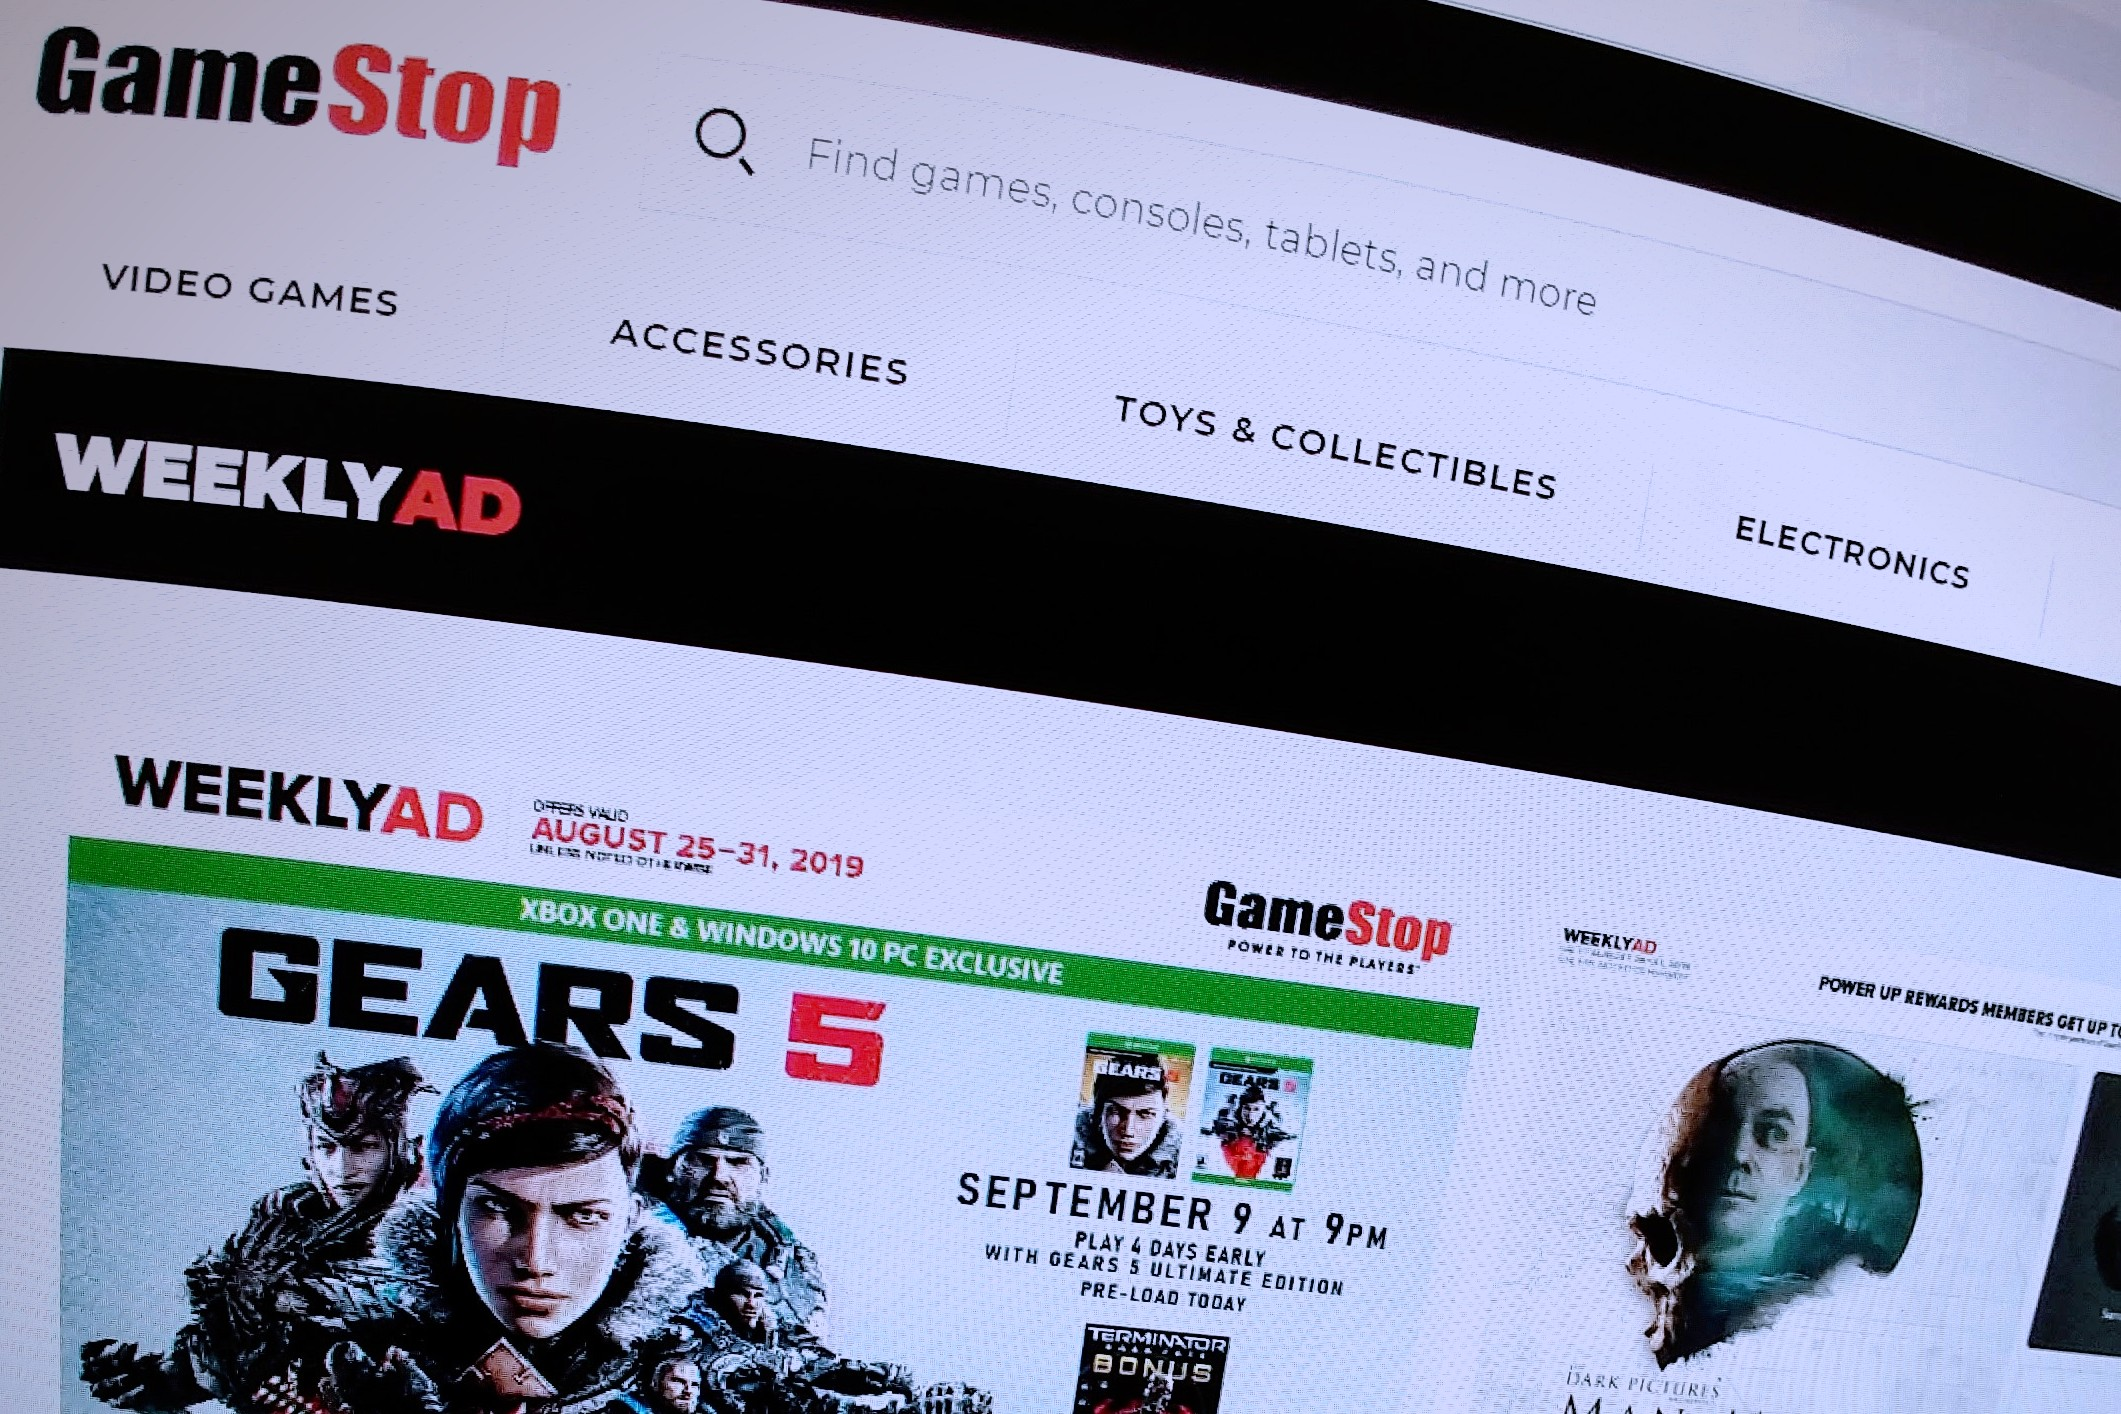 What To Expect From Gamestop Cyber Monday Sales In 2019